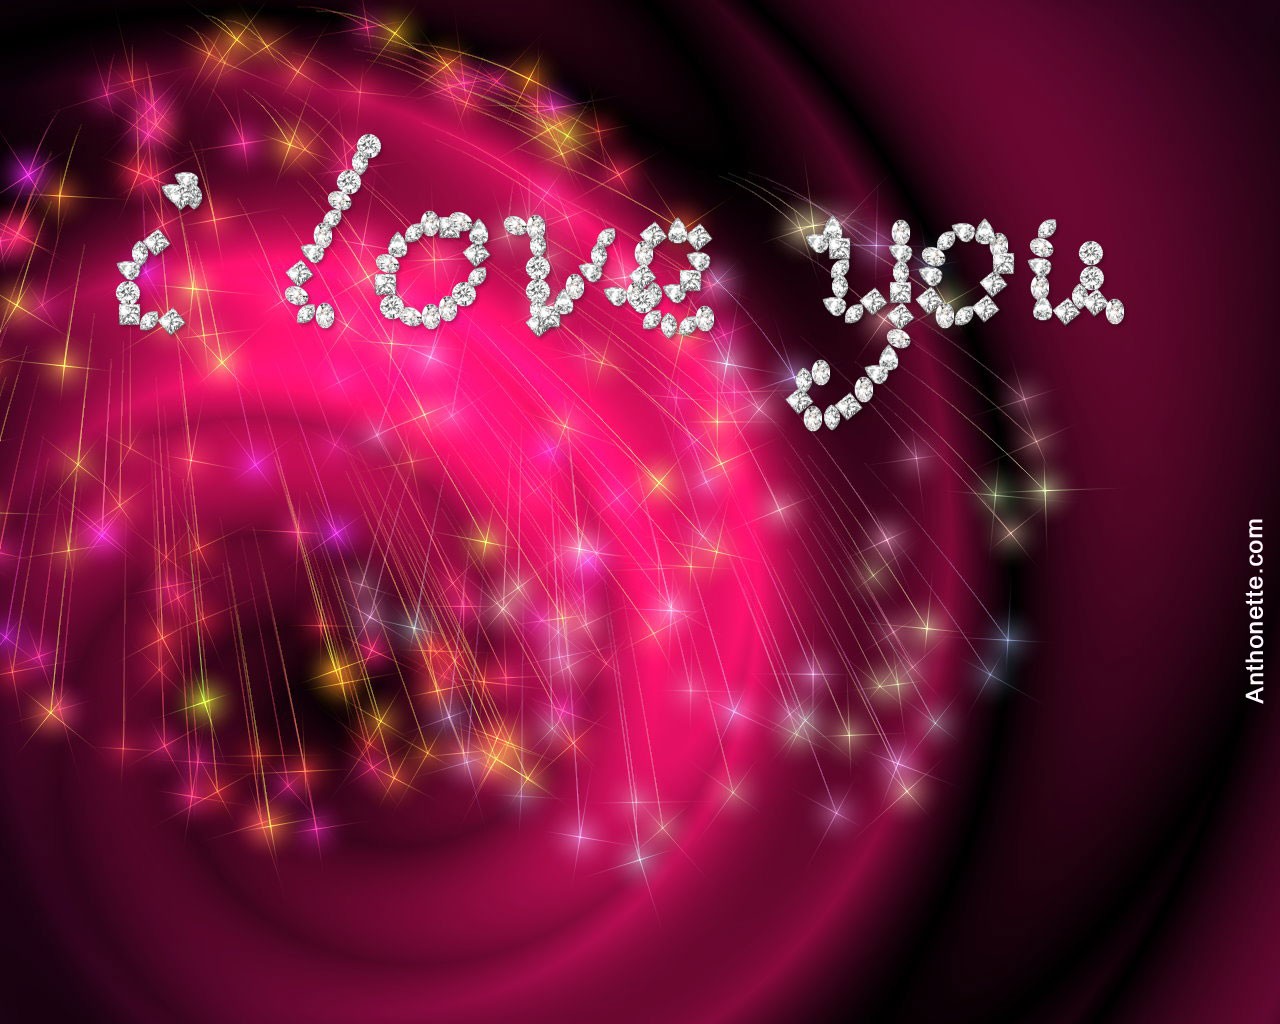 Love You Wallpaper Full Hd : Love You Wallpapers HD Nice Wallpapers